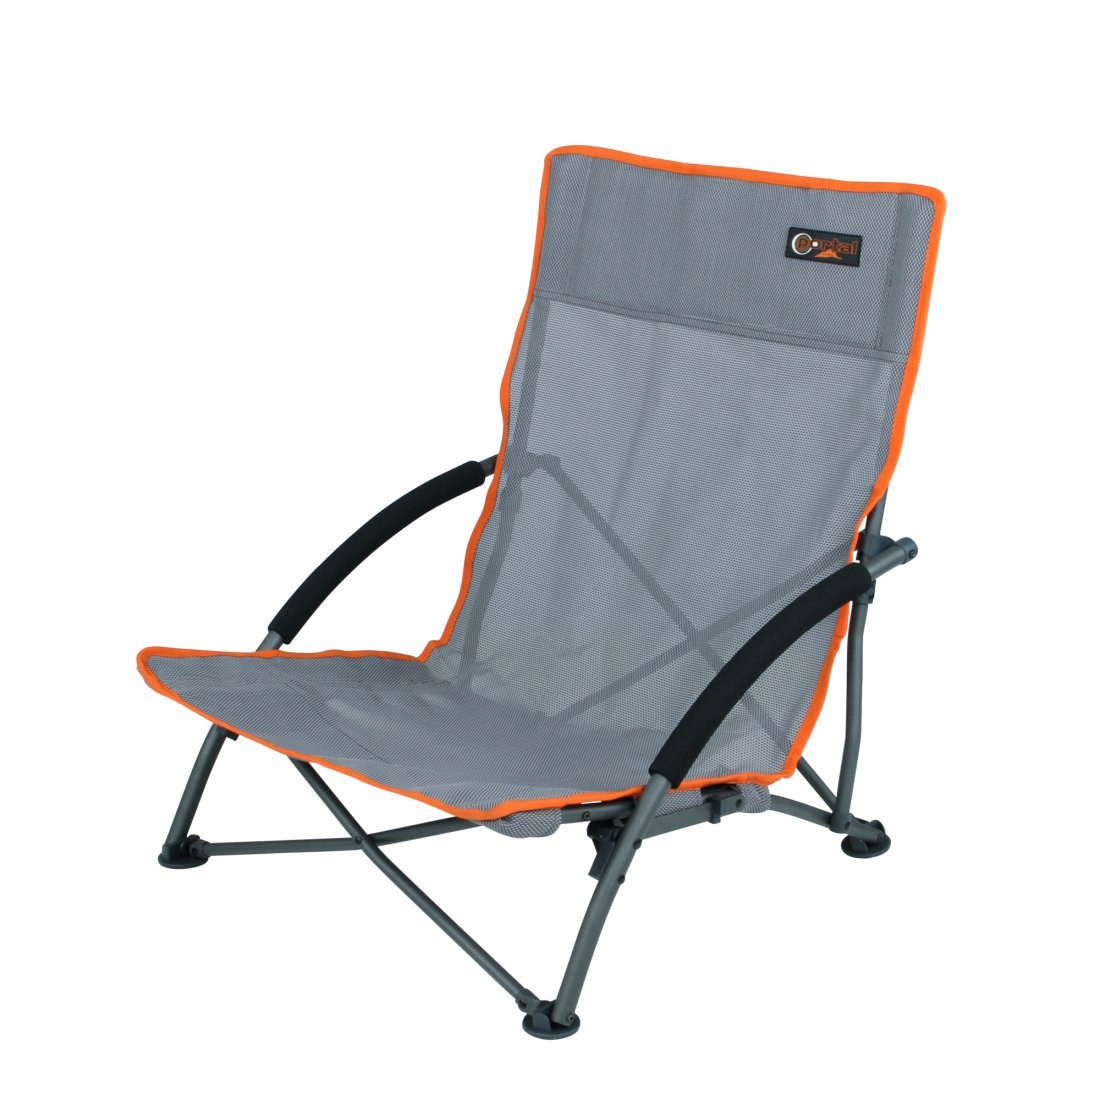 buy portal amy mobile camping chair beach chair with. Black Bedroom Furniture Sets. Home Design Ideas